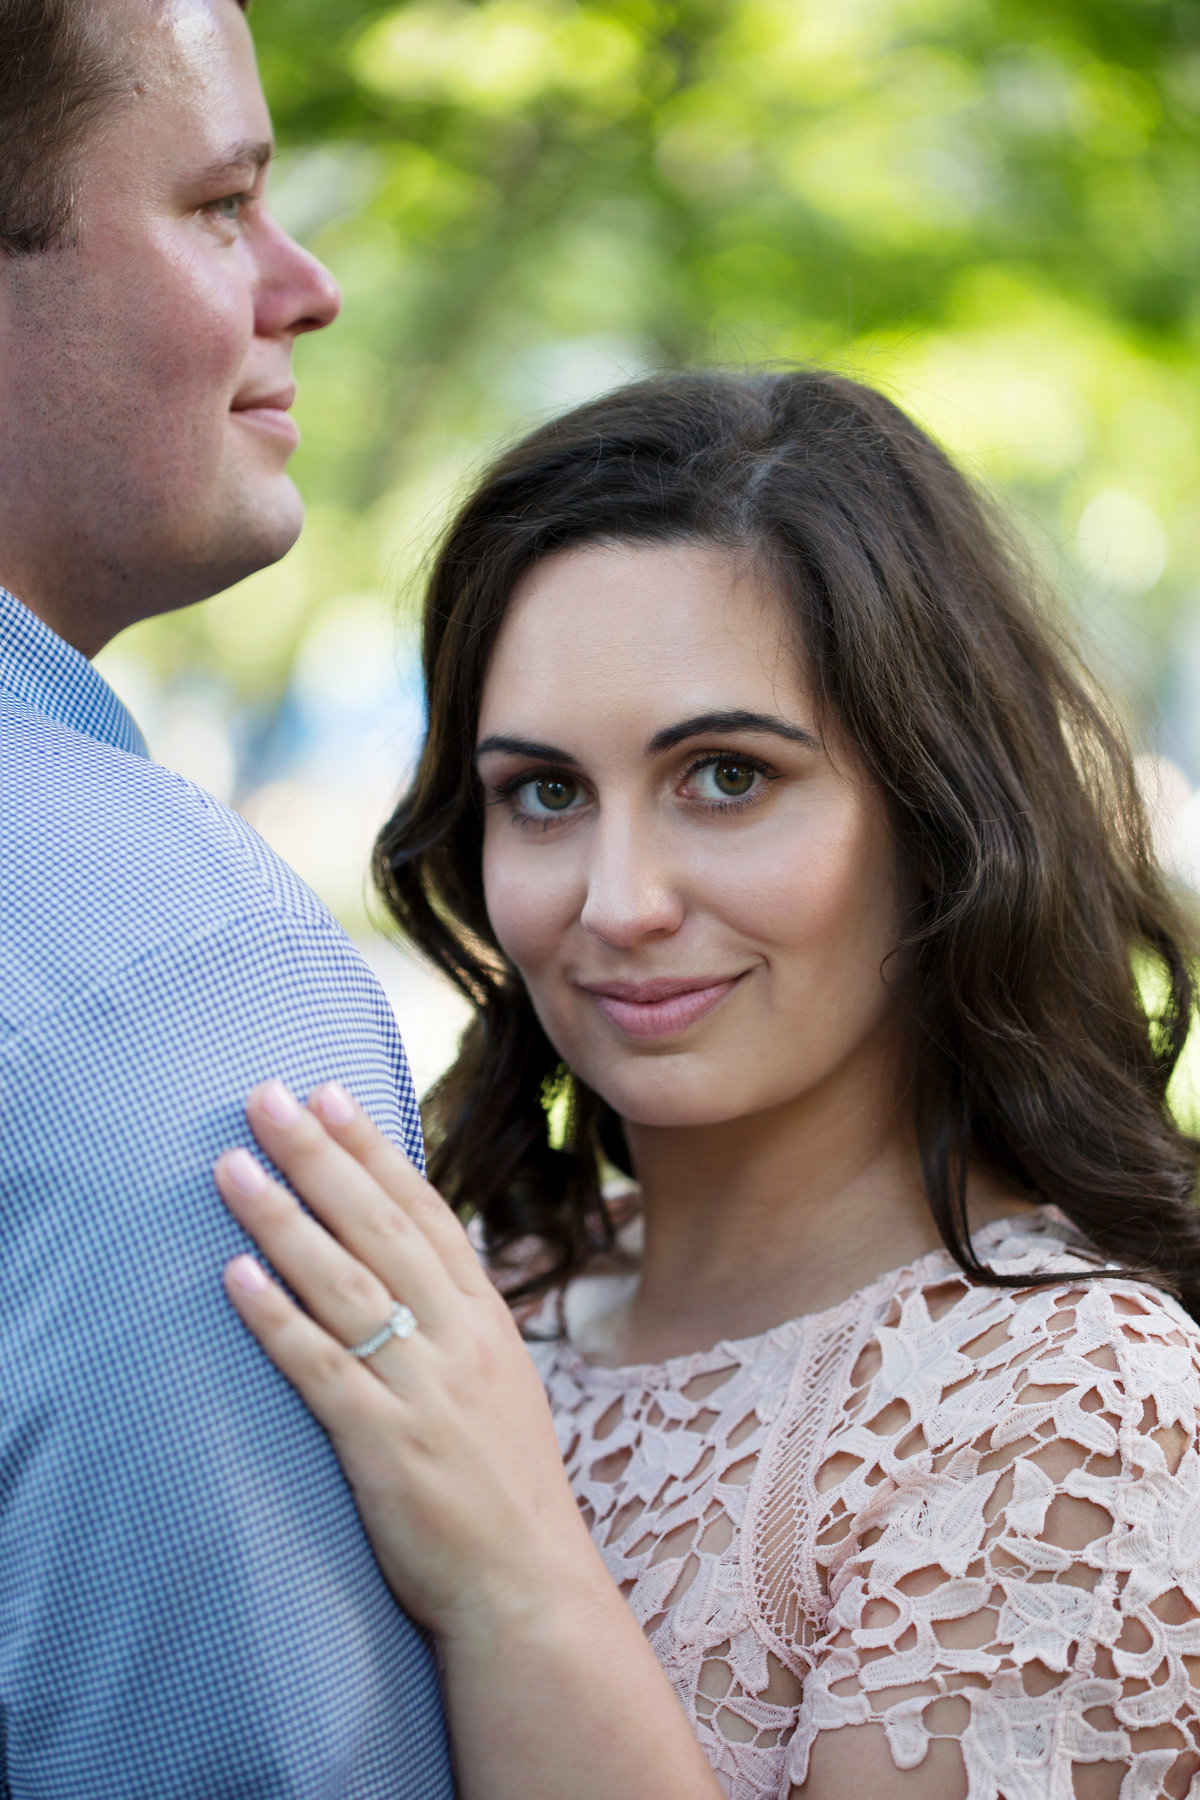 Rittenhouse-Square-Engagement-Mariya-Stecklair-Photography-65